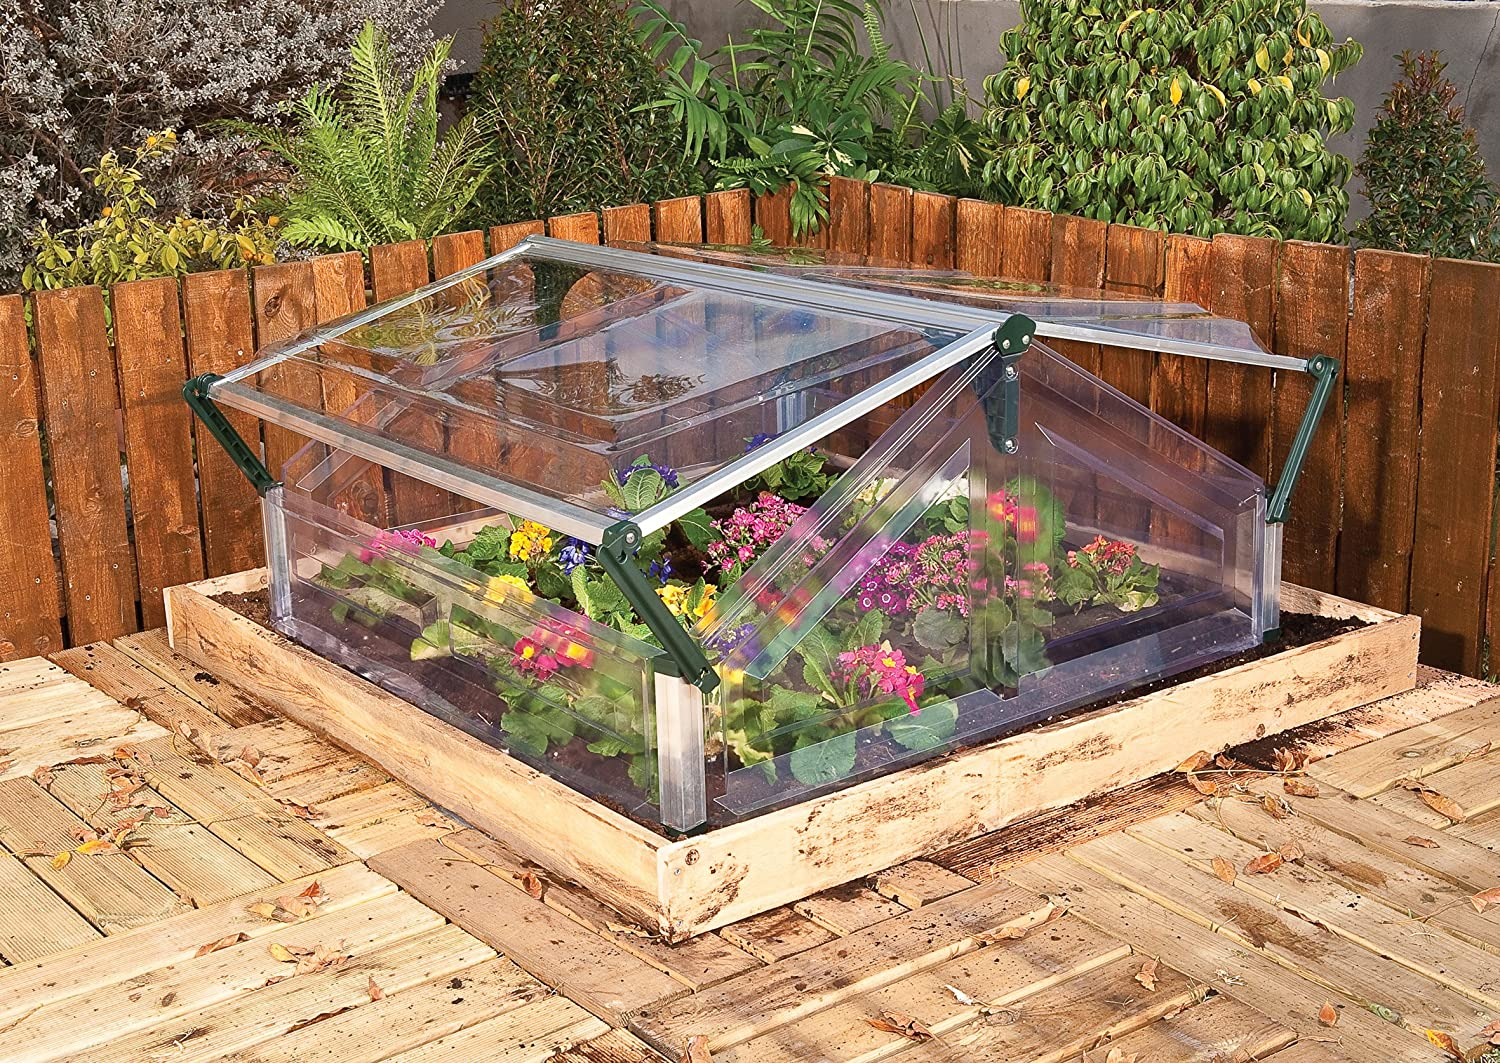 Amazon.com : Palram Cold Frame, Double : Greenhouse Cold Frames ...